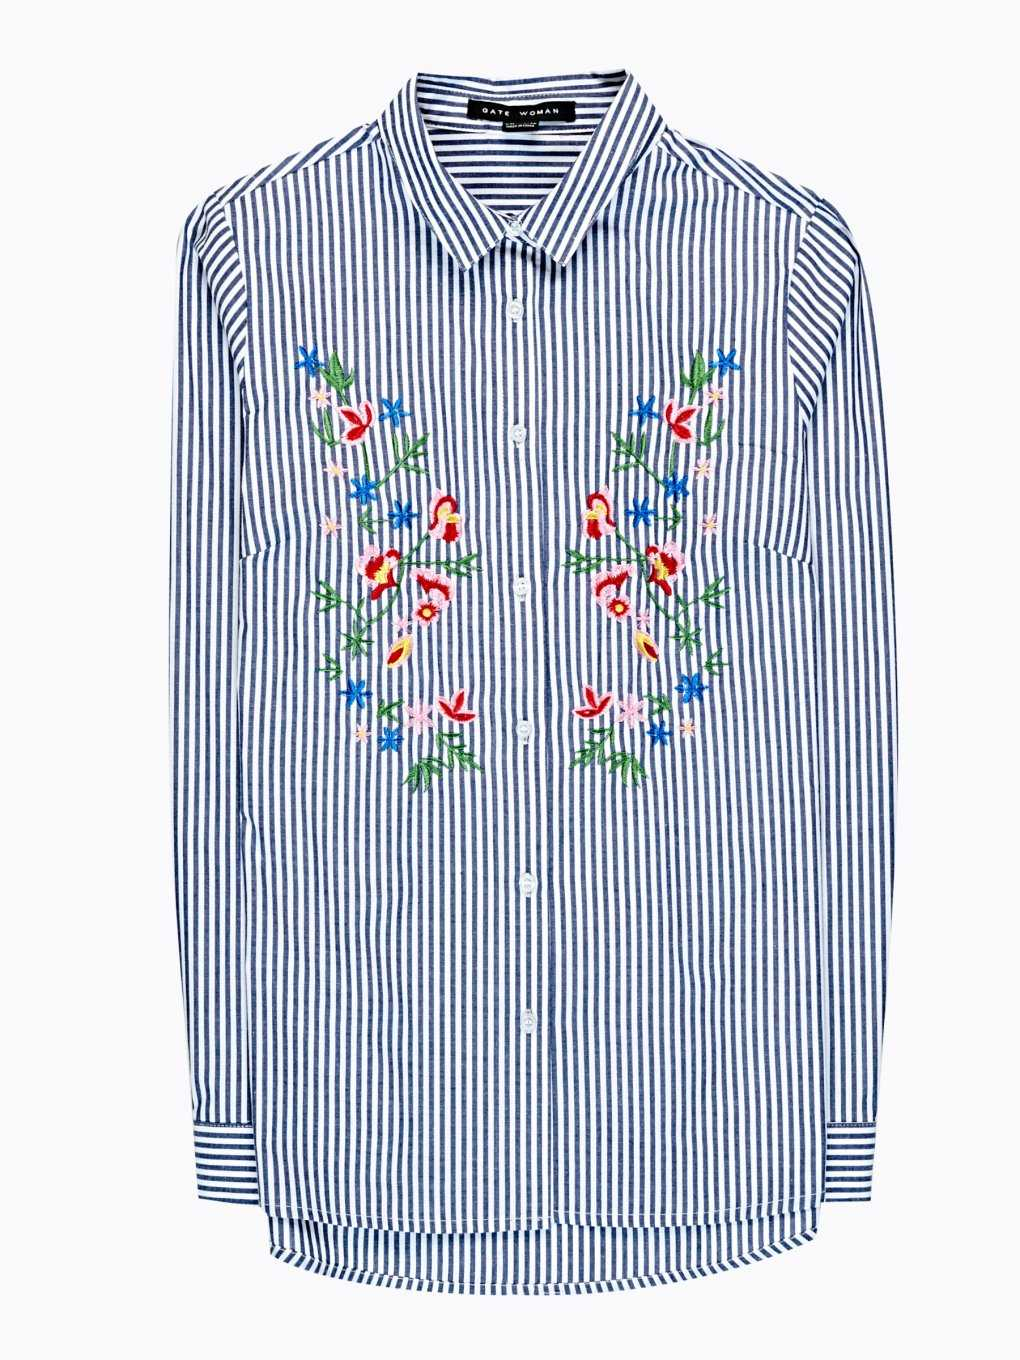 STRIPED SHIRT WITH FLORAL EMBROIDERY